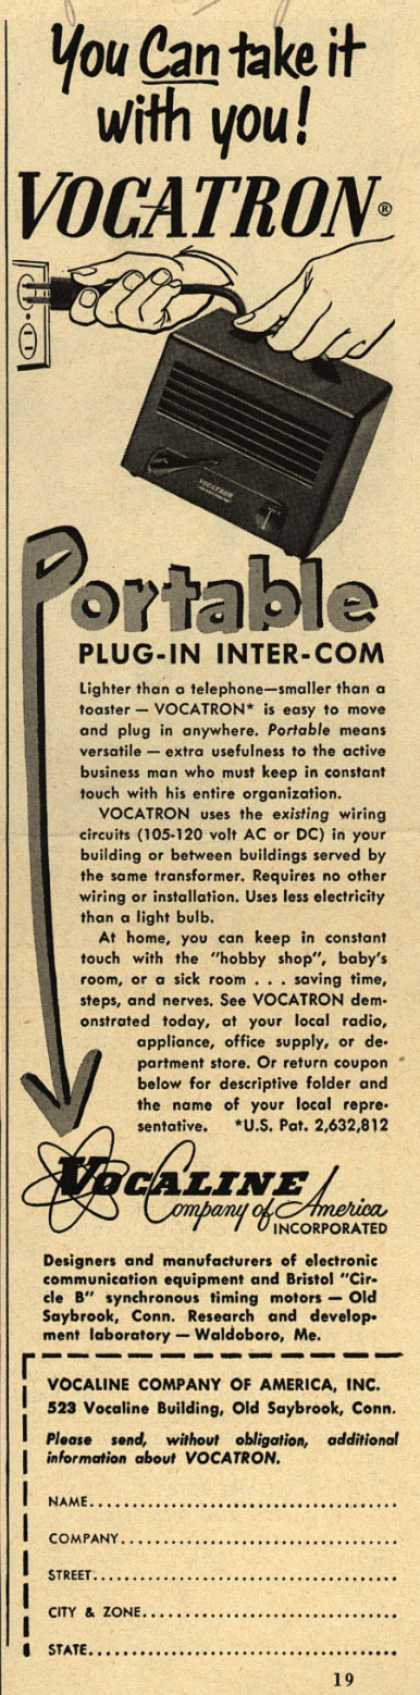 Vocaline Company of America, Incorporated's Portable Intercoms – You Can Take It With You! Vocatron Portable Plug-In Inter-Com (1953)